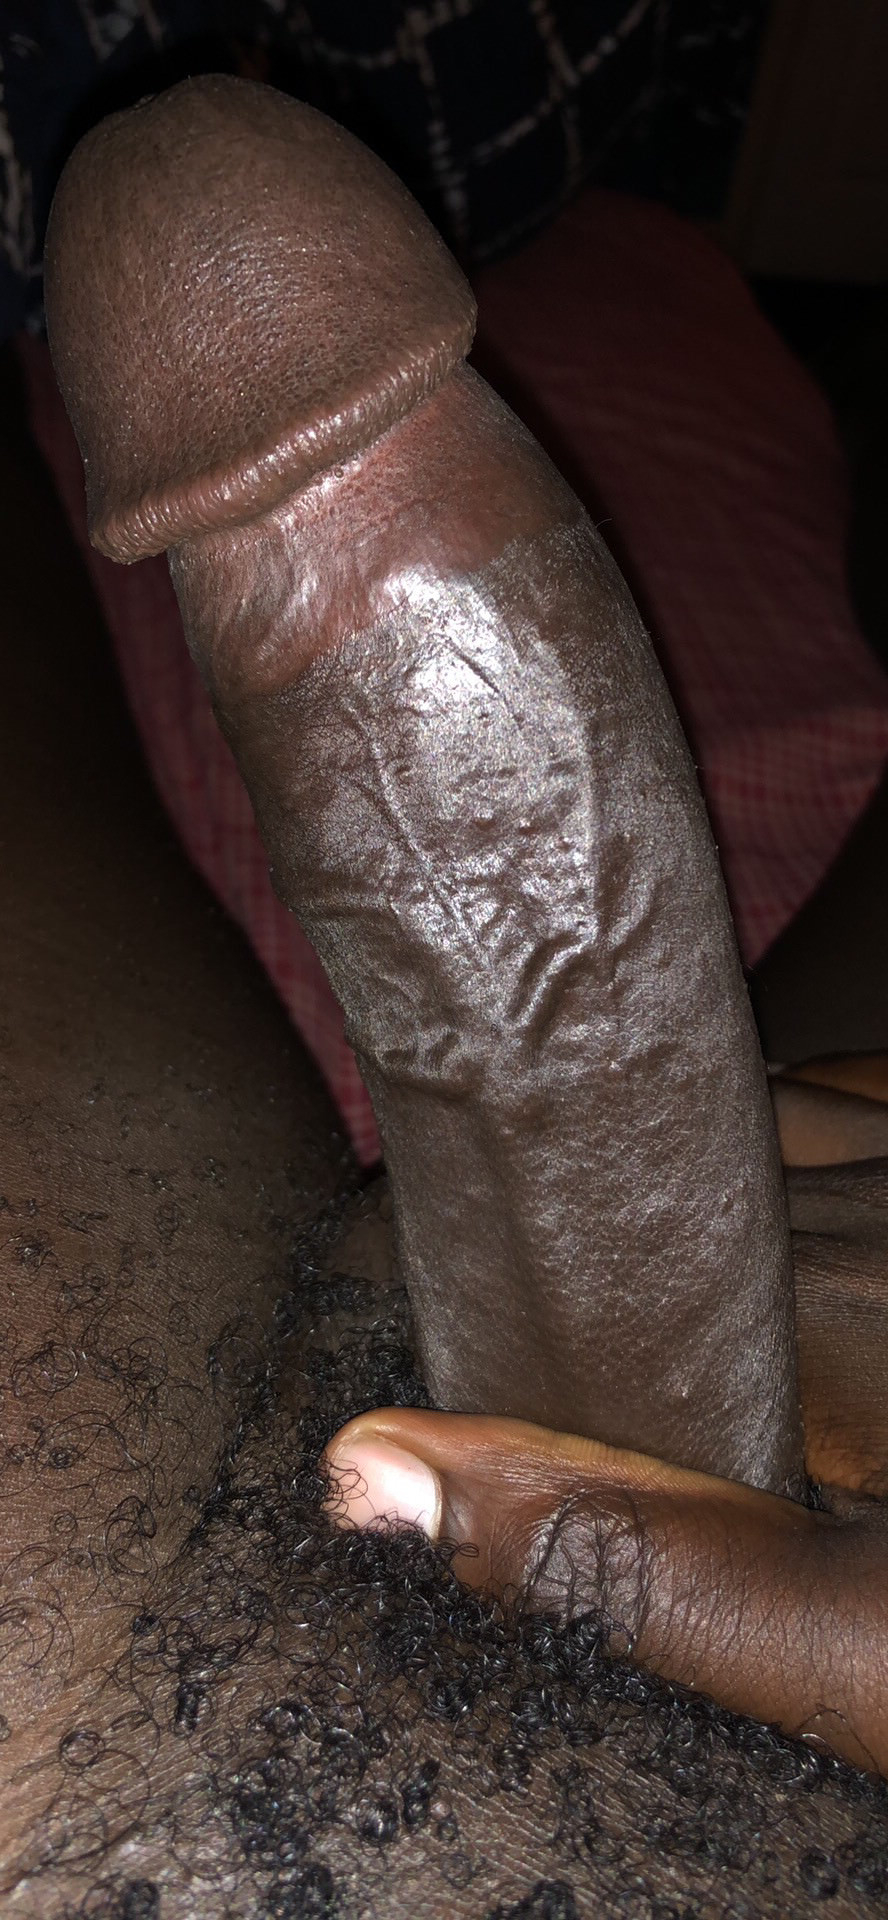 Could you fit on me? PMs welcomed ;) | Black  Porn XXX | Hot XXX Gays